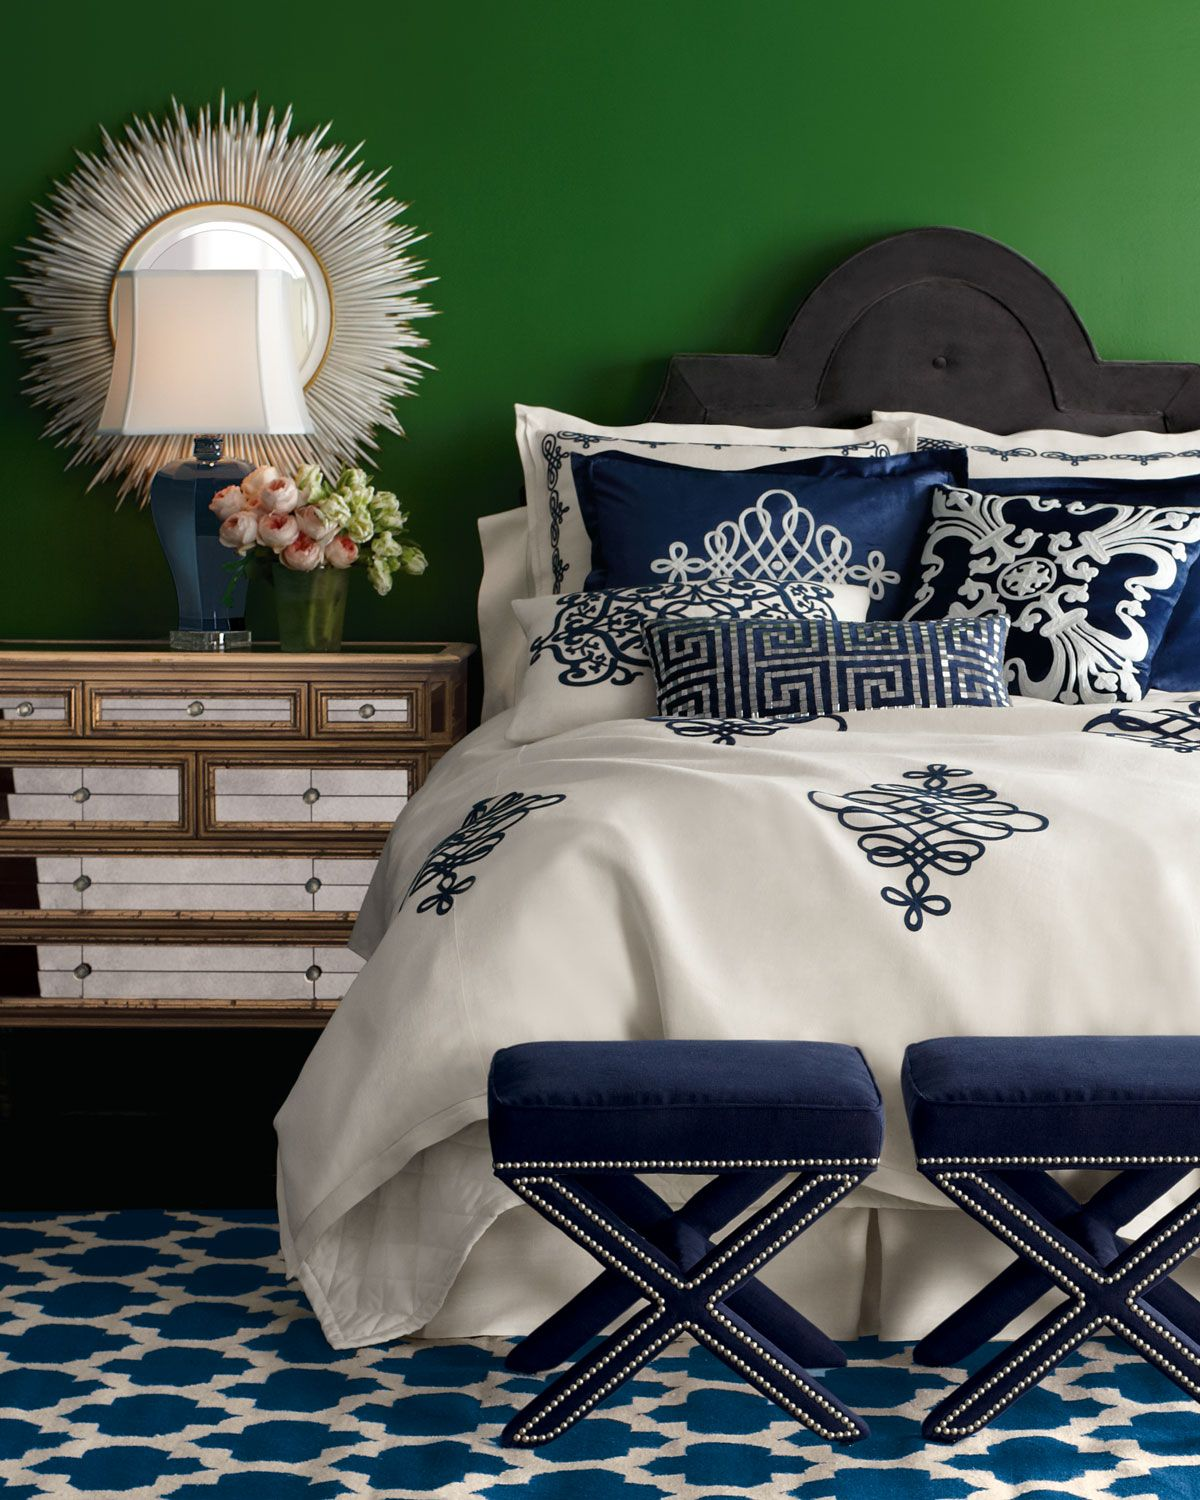 Baños Verde Esmeralda:Navy Blue and Emerald Green Bedroom